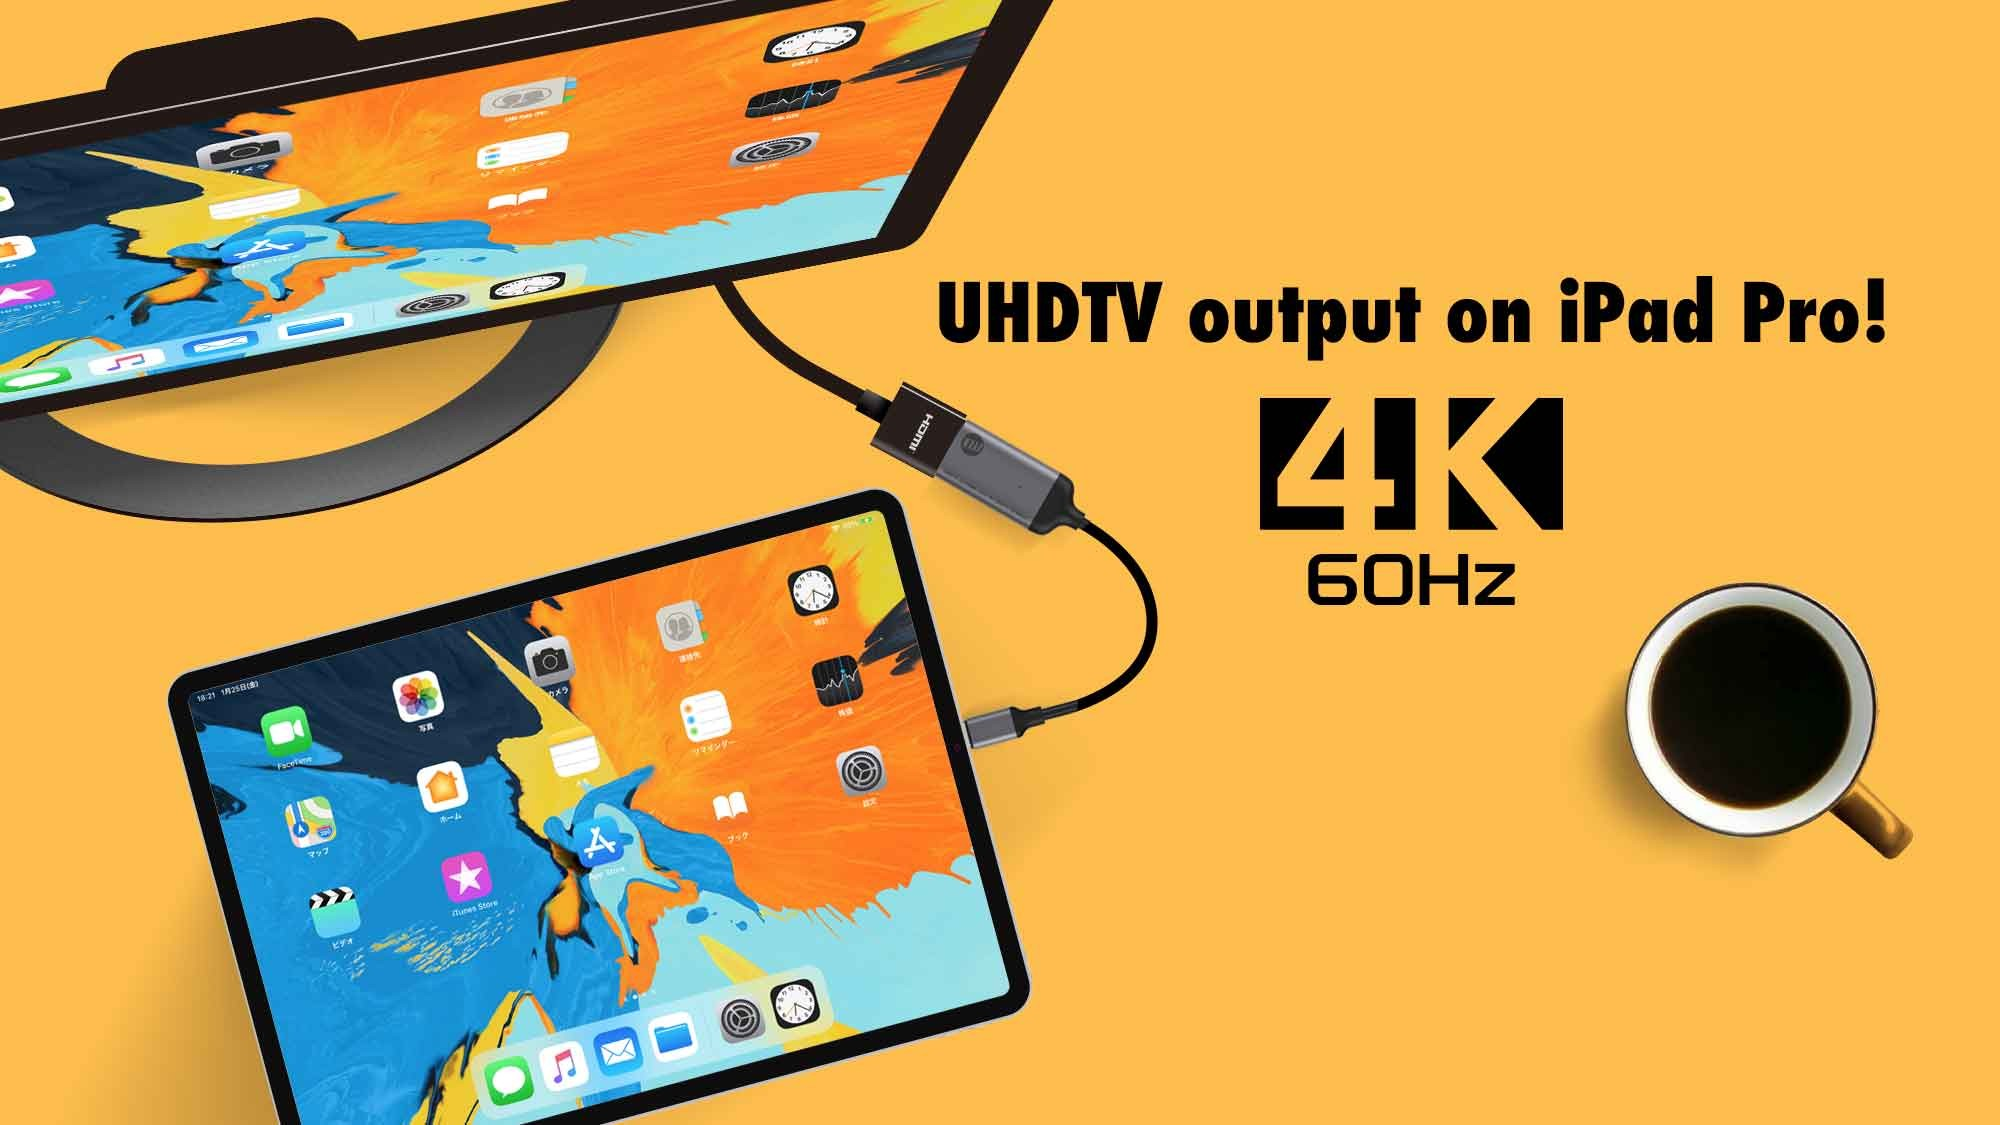 USB-C to HDMI v2.0 4K UHDTV (2160p) Adapter